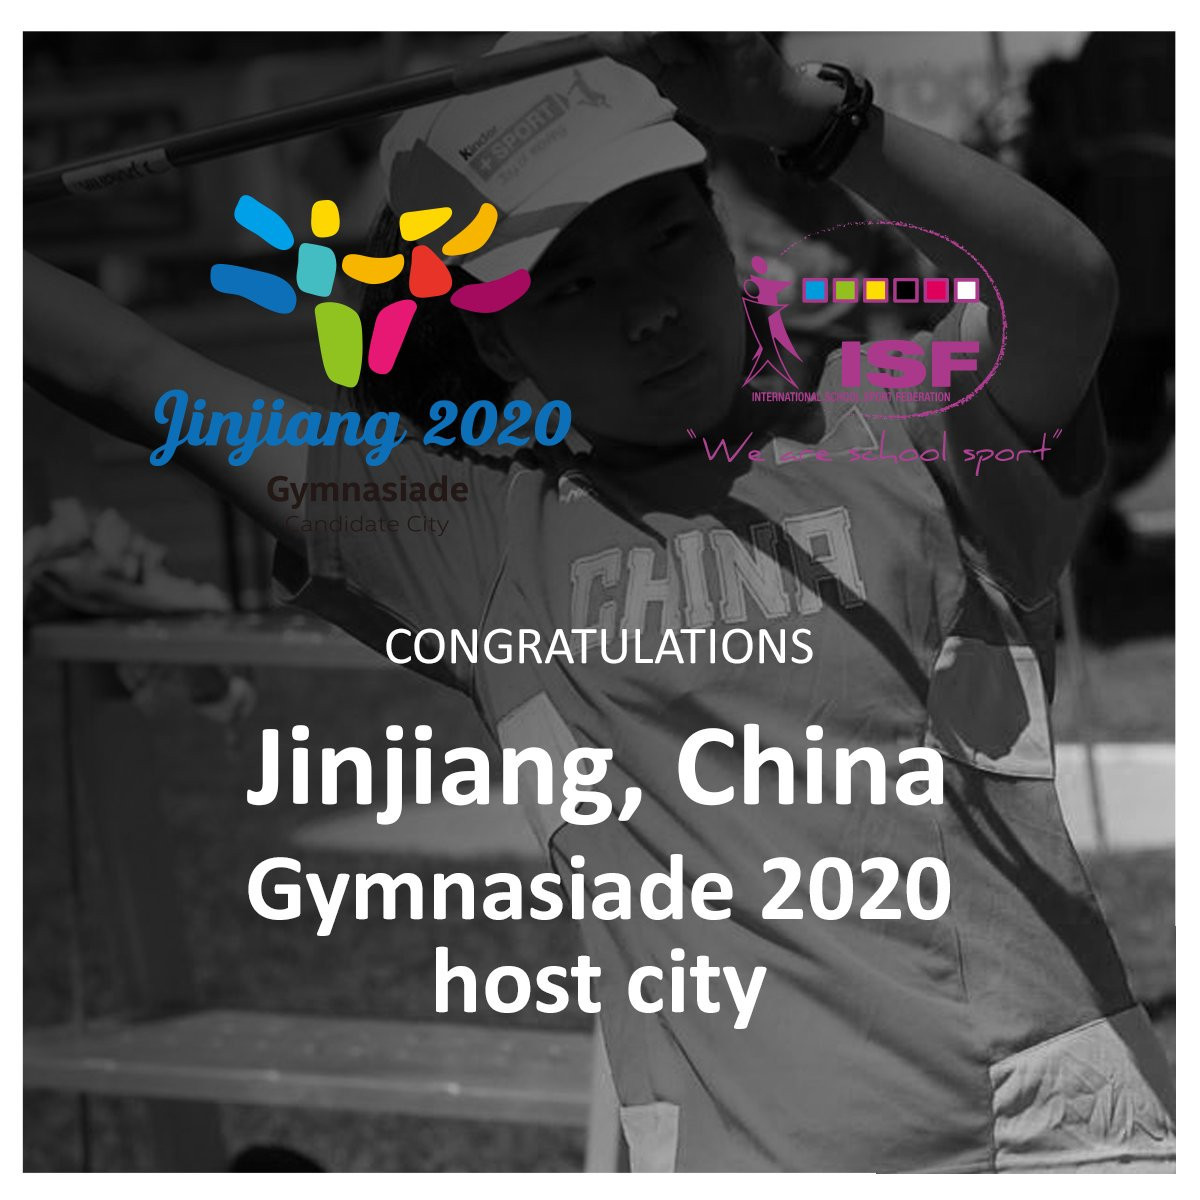 Heavyweight Jinjiang knocks-out Taoyuan and Budapest to gain ISF's 2020 Gymnasiade